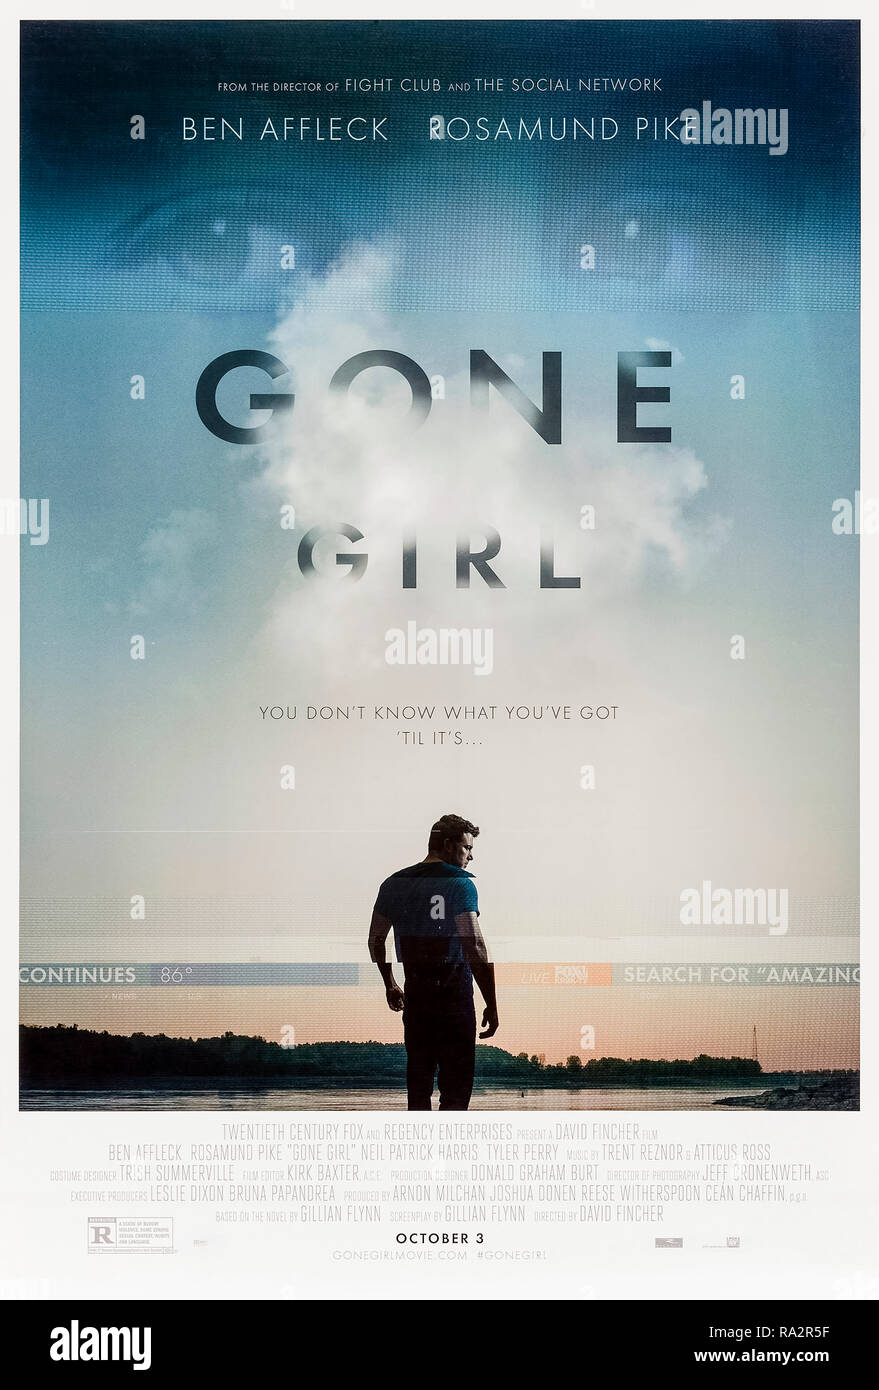 Gone Girl (2014) directed by David Fincher and starring Ben Affleck, Rosamund Pike, Neil Patrick Harris and Tyler Perry. Film version of Gillian Flynn's bestselling novel about a missing wife and a suspicious husband. - Stock Image